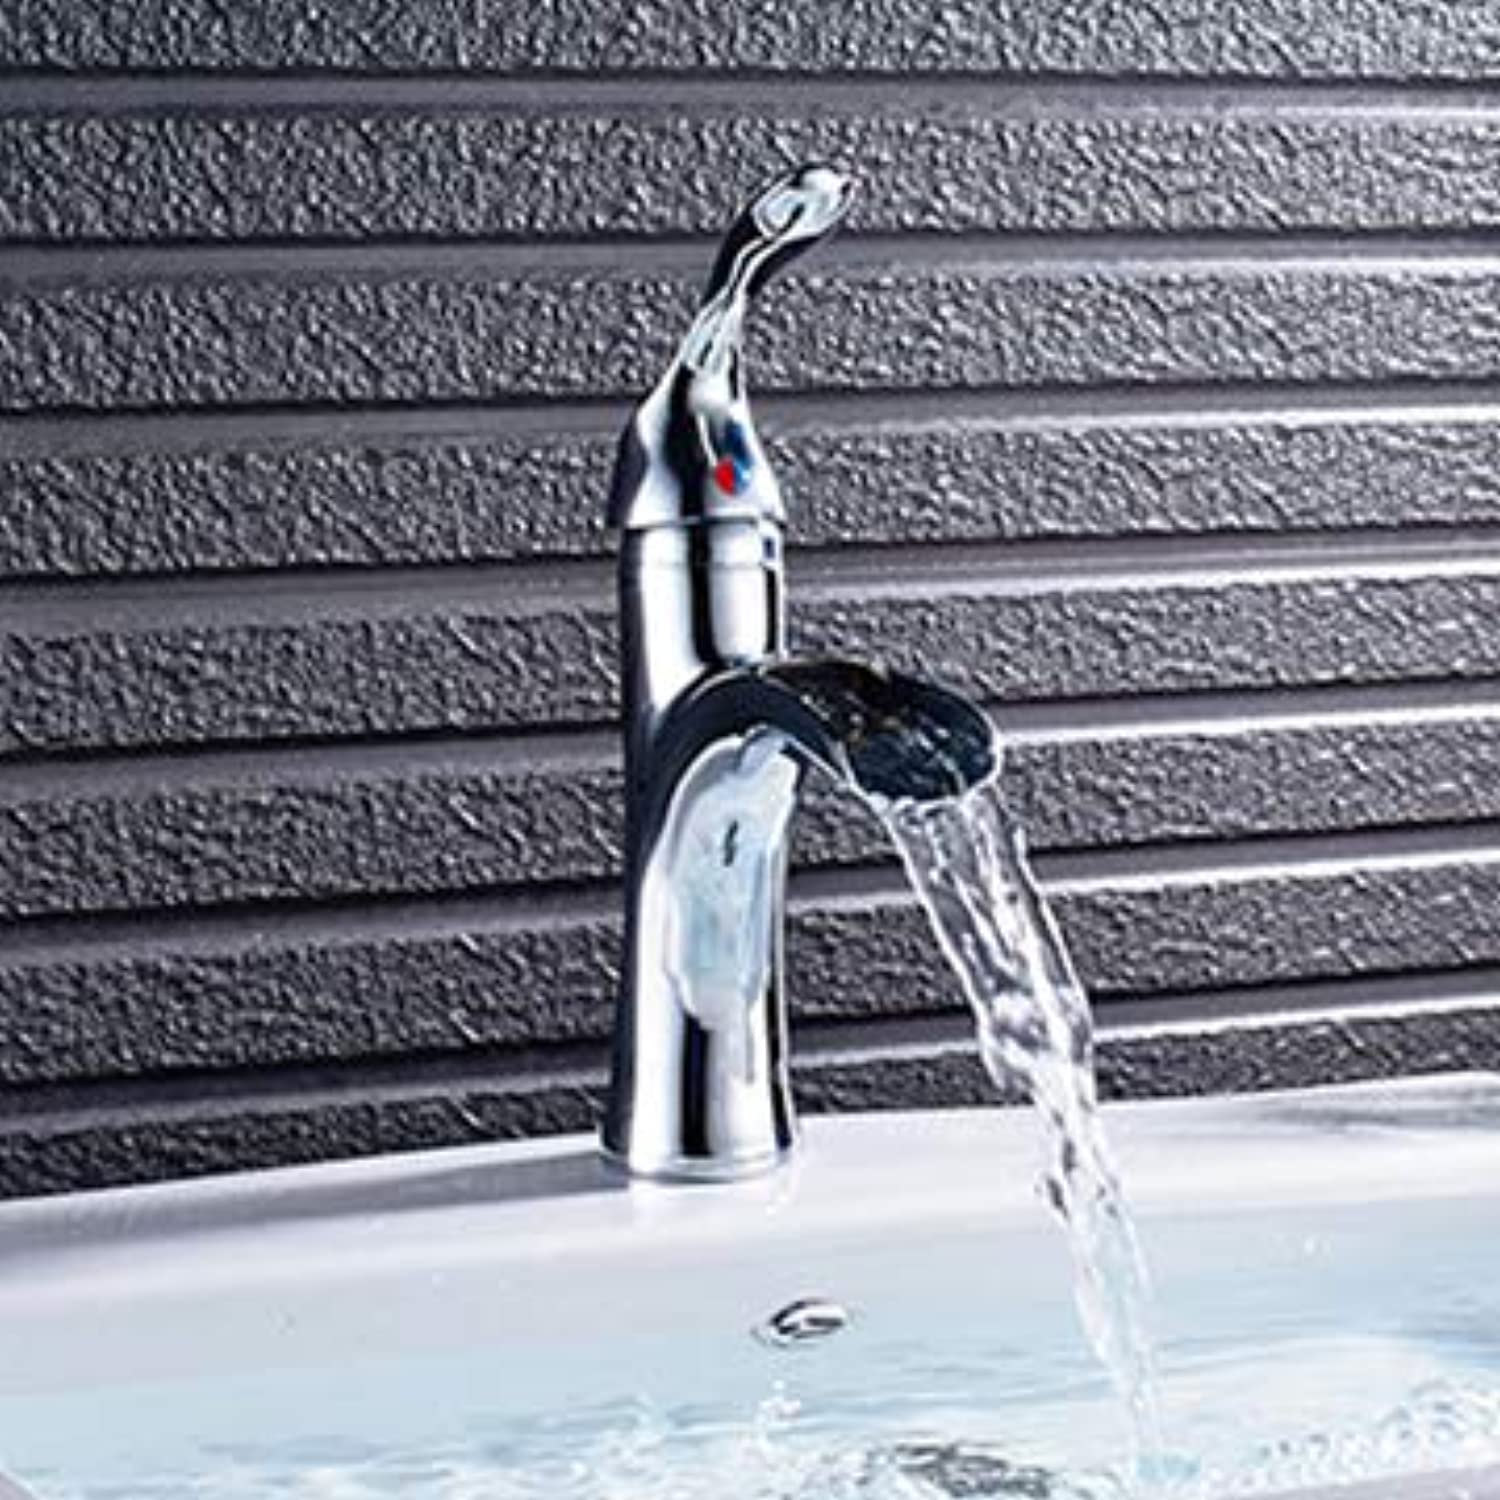 U-Enjoy Chandelier Faucets Waterfall Basin Faucet Handle Top Quality Basin Single Mixer Tap Bathroom Chrome Nickel Orb Faucet Finish Free Shipping [Chrome]